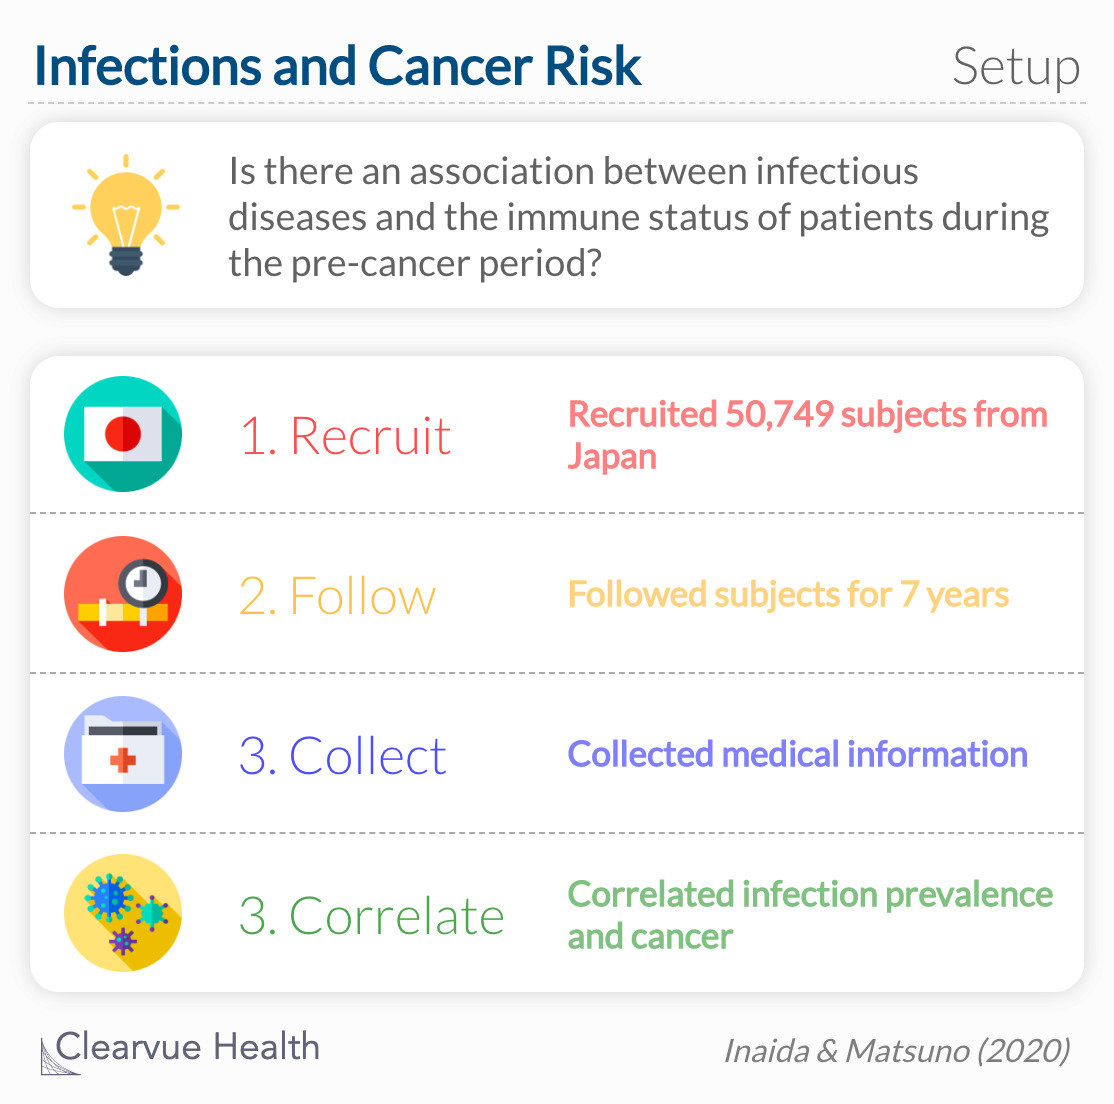 A case–control study to estimate the prevalence of four major infectious diseases, influenza, gastroenteritis, hepatitis, and pneumonia, as possible surrogates for observing the immune status of patients during the precancer period